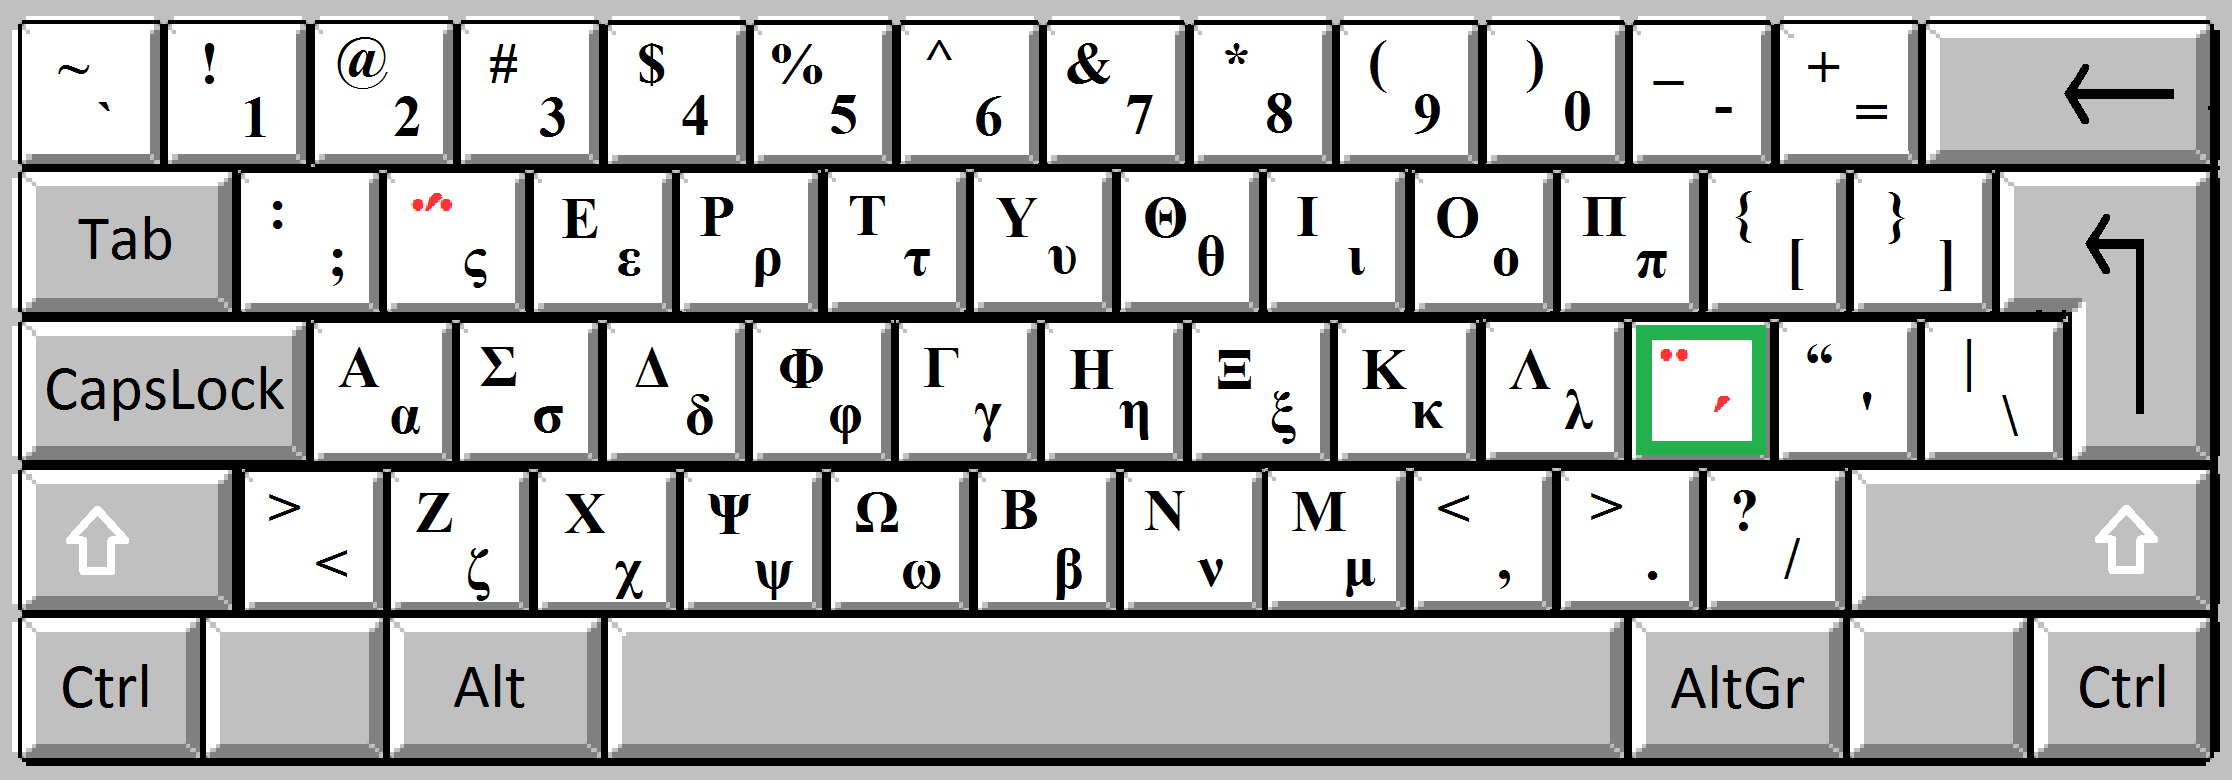 file greek keyboard mono 2 png wikimedia commons how to make your own clip art with letters how to make your own clipart for free